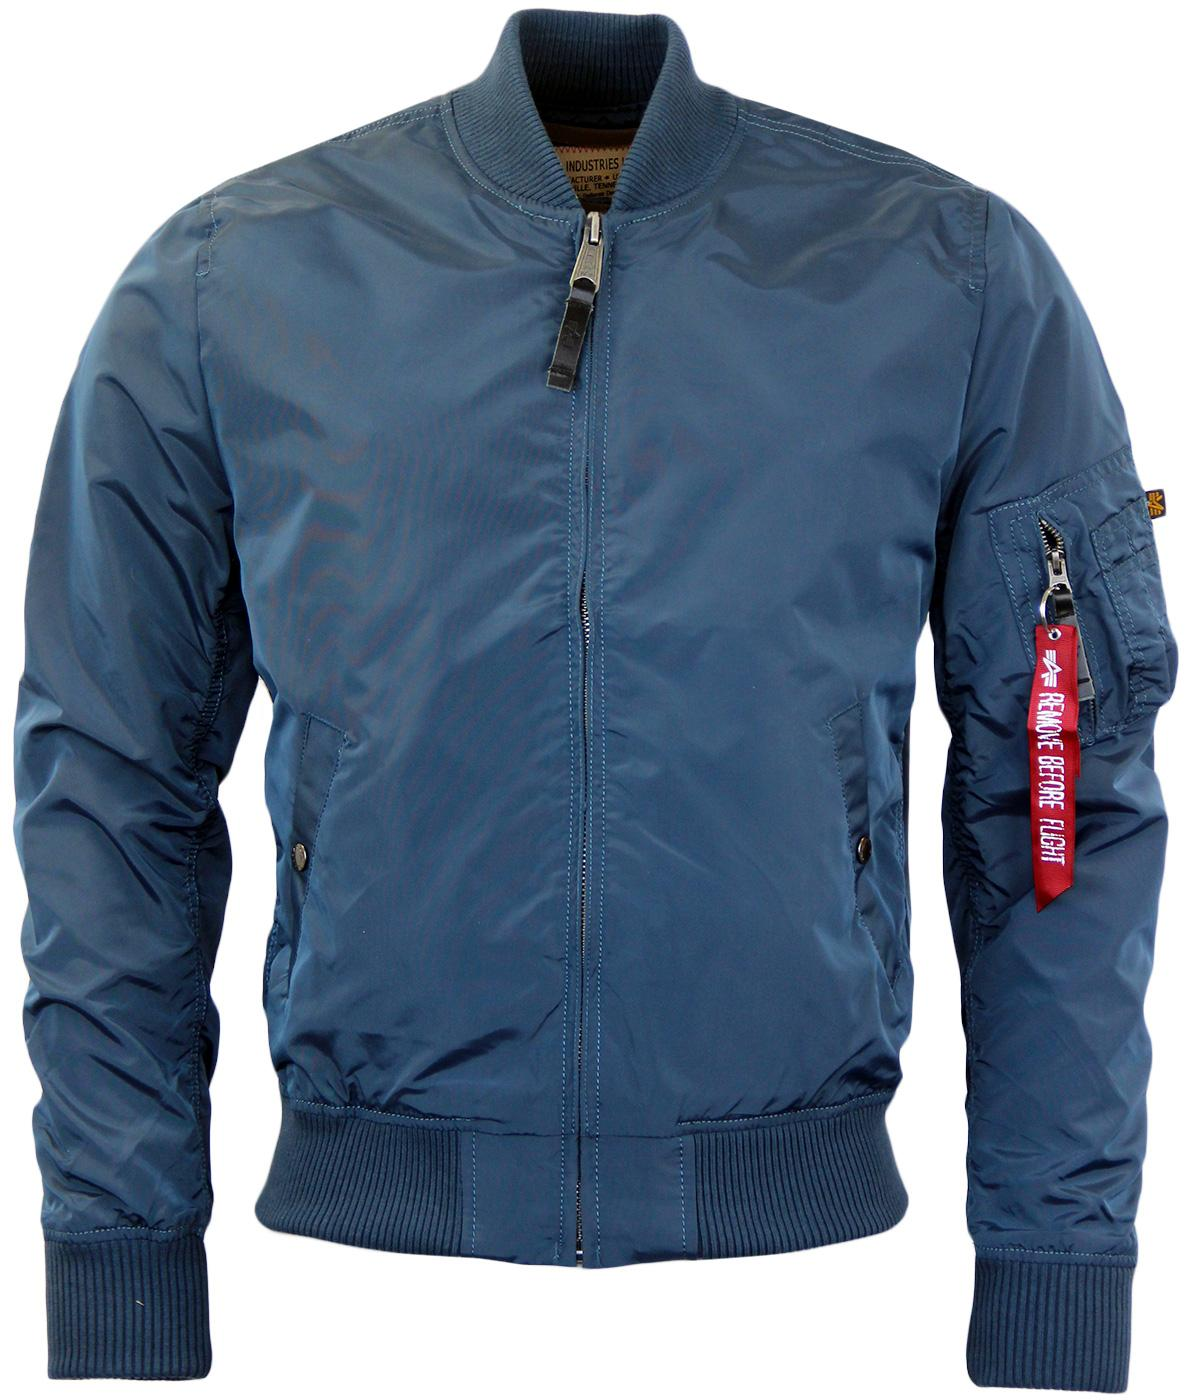 MA1 TT ALPHA INDUSTRIES Retro Mod Bomber Jacket BB